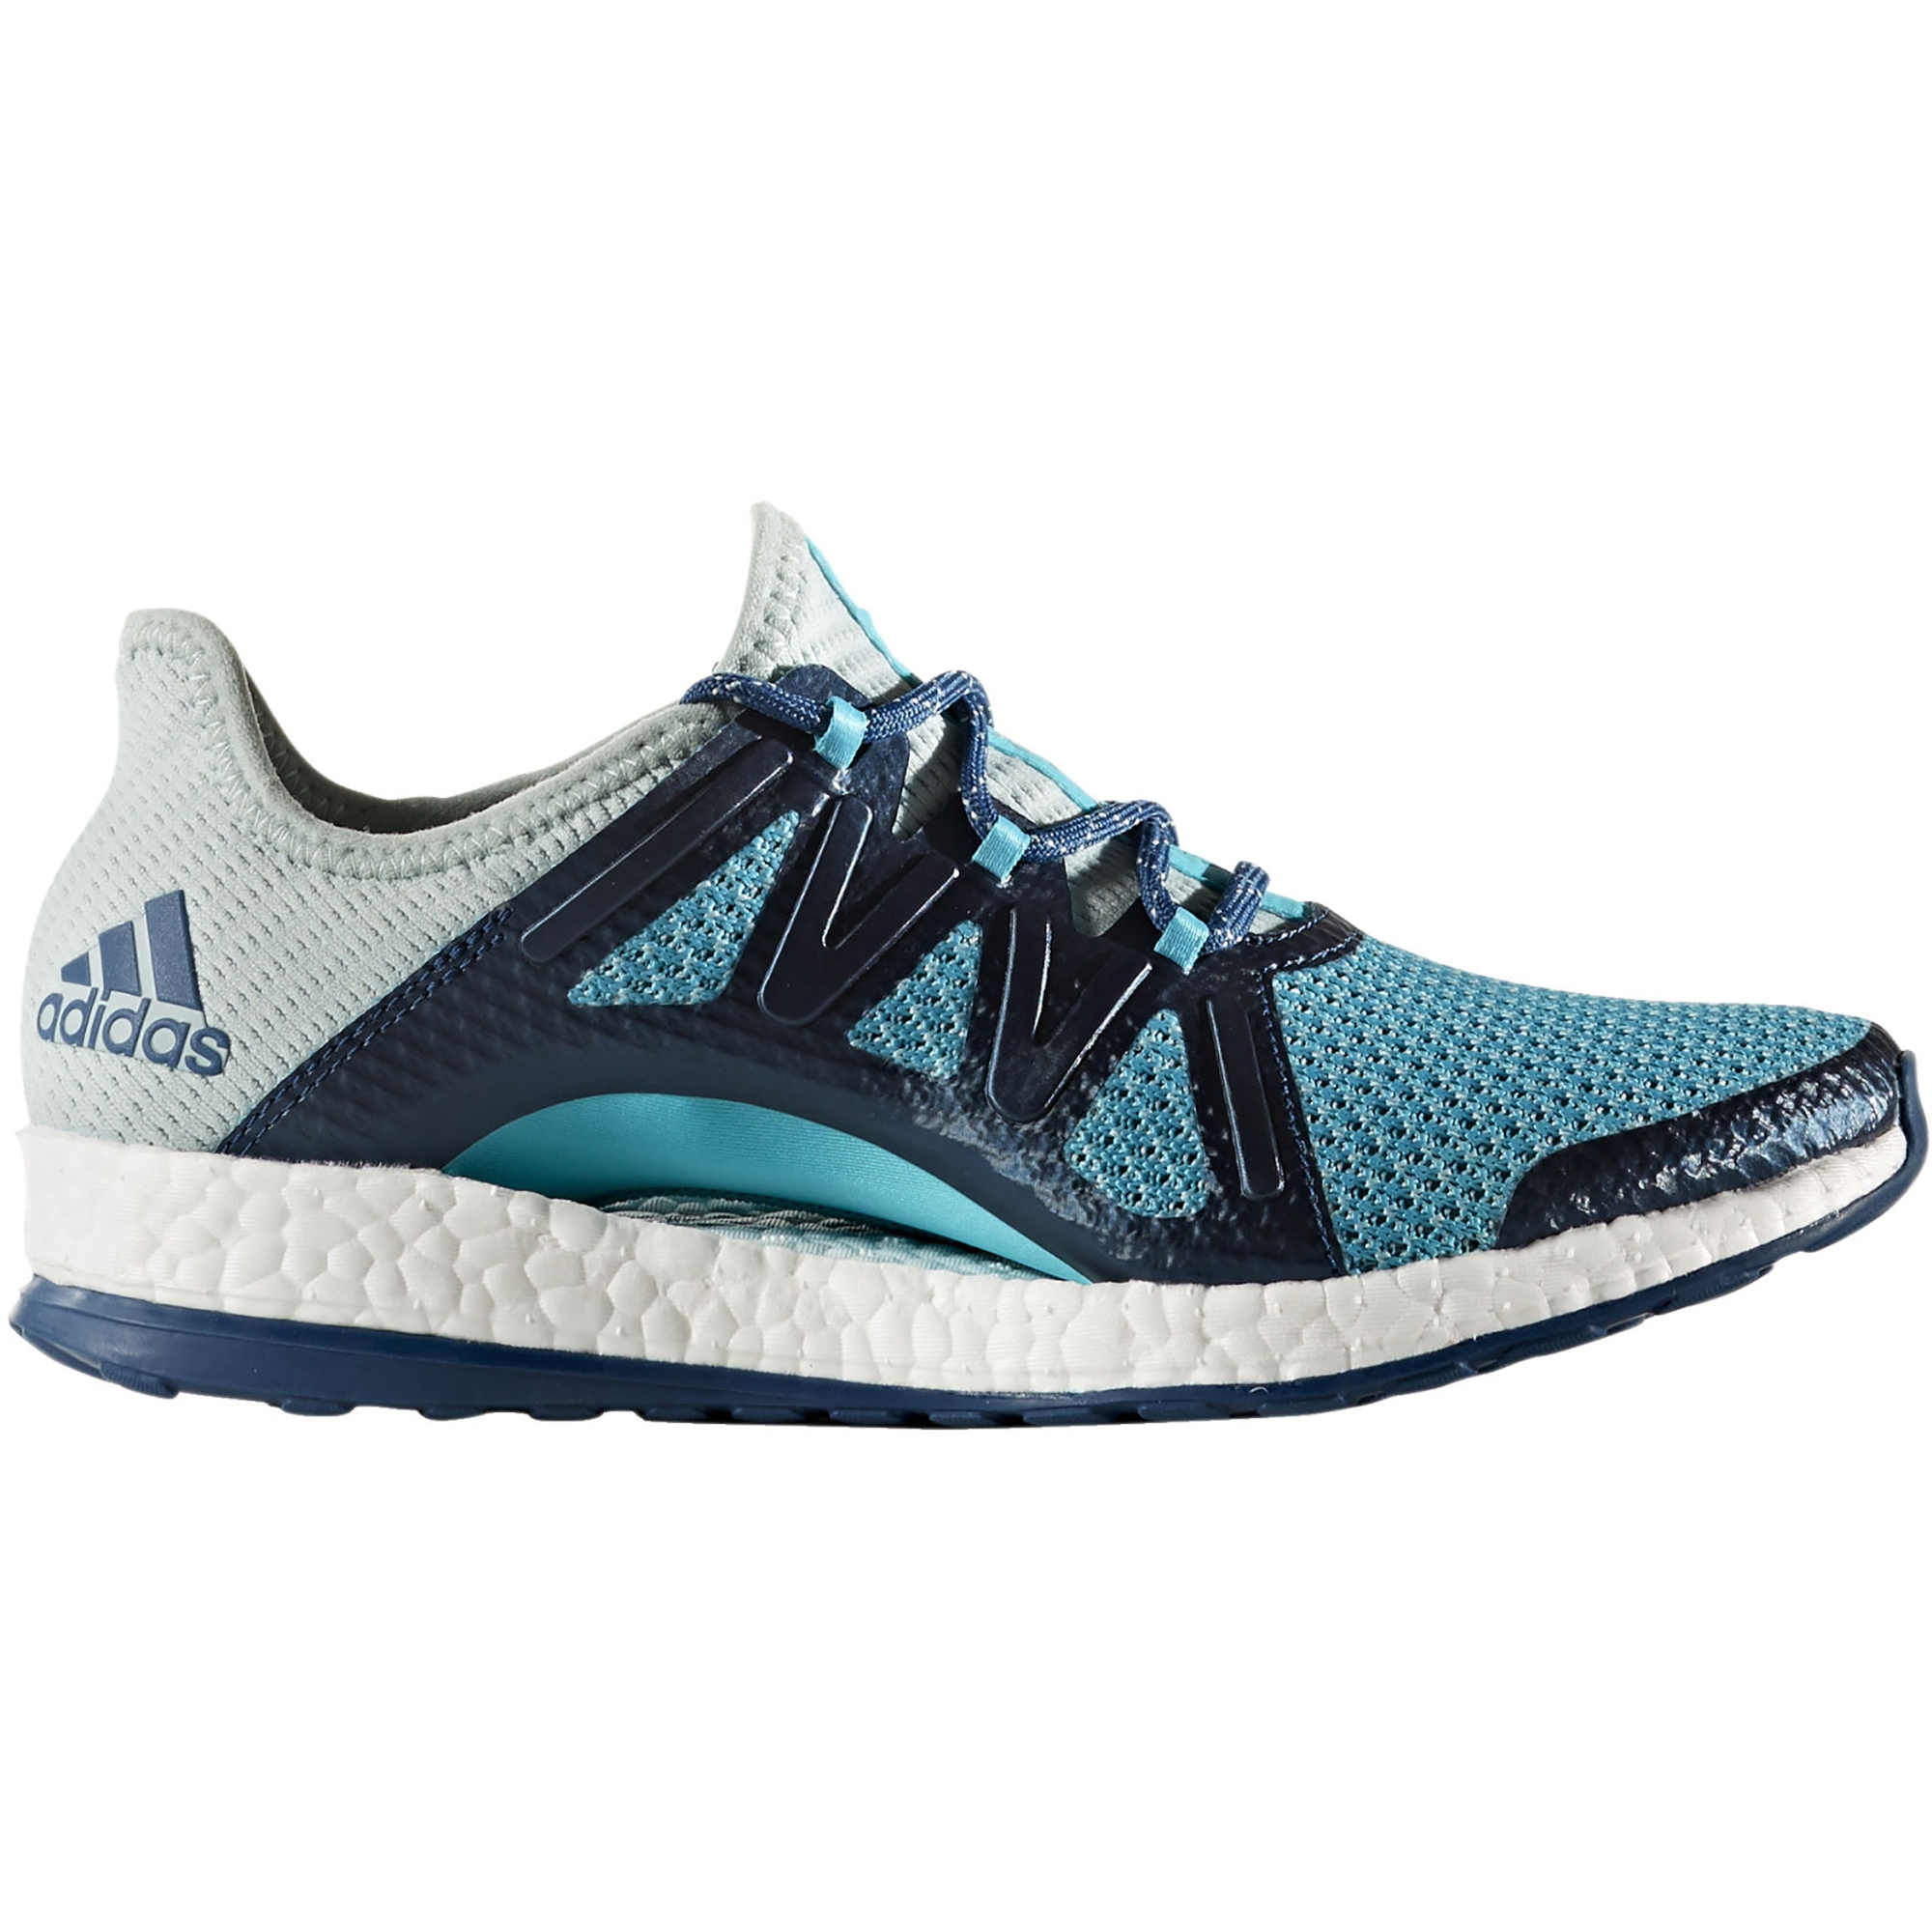 adidas Women's Pure Boost Xpose Shoes | Sko